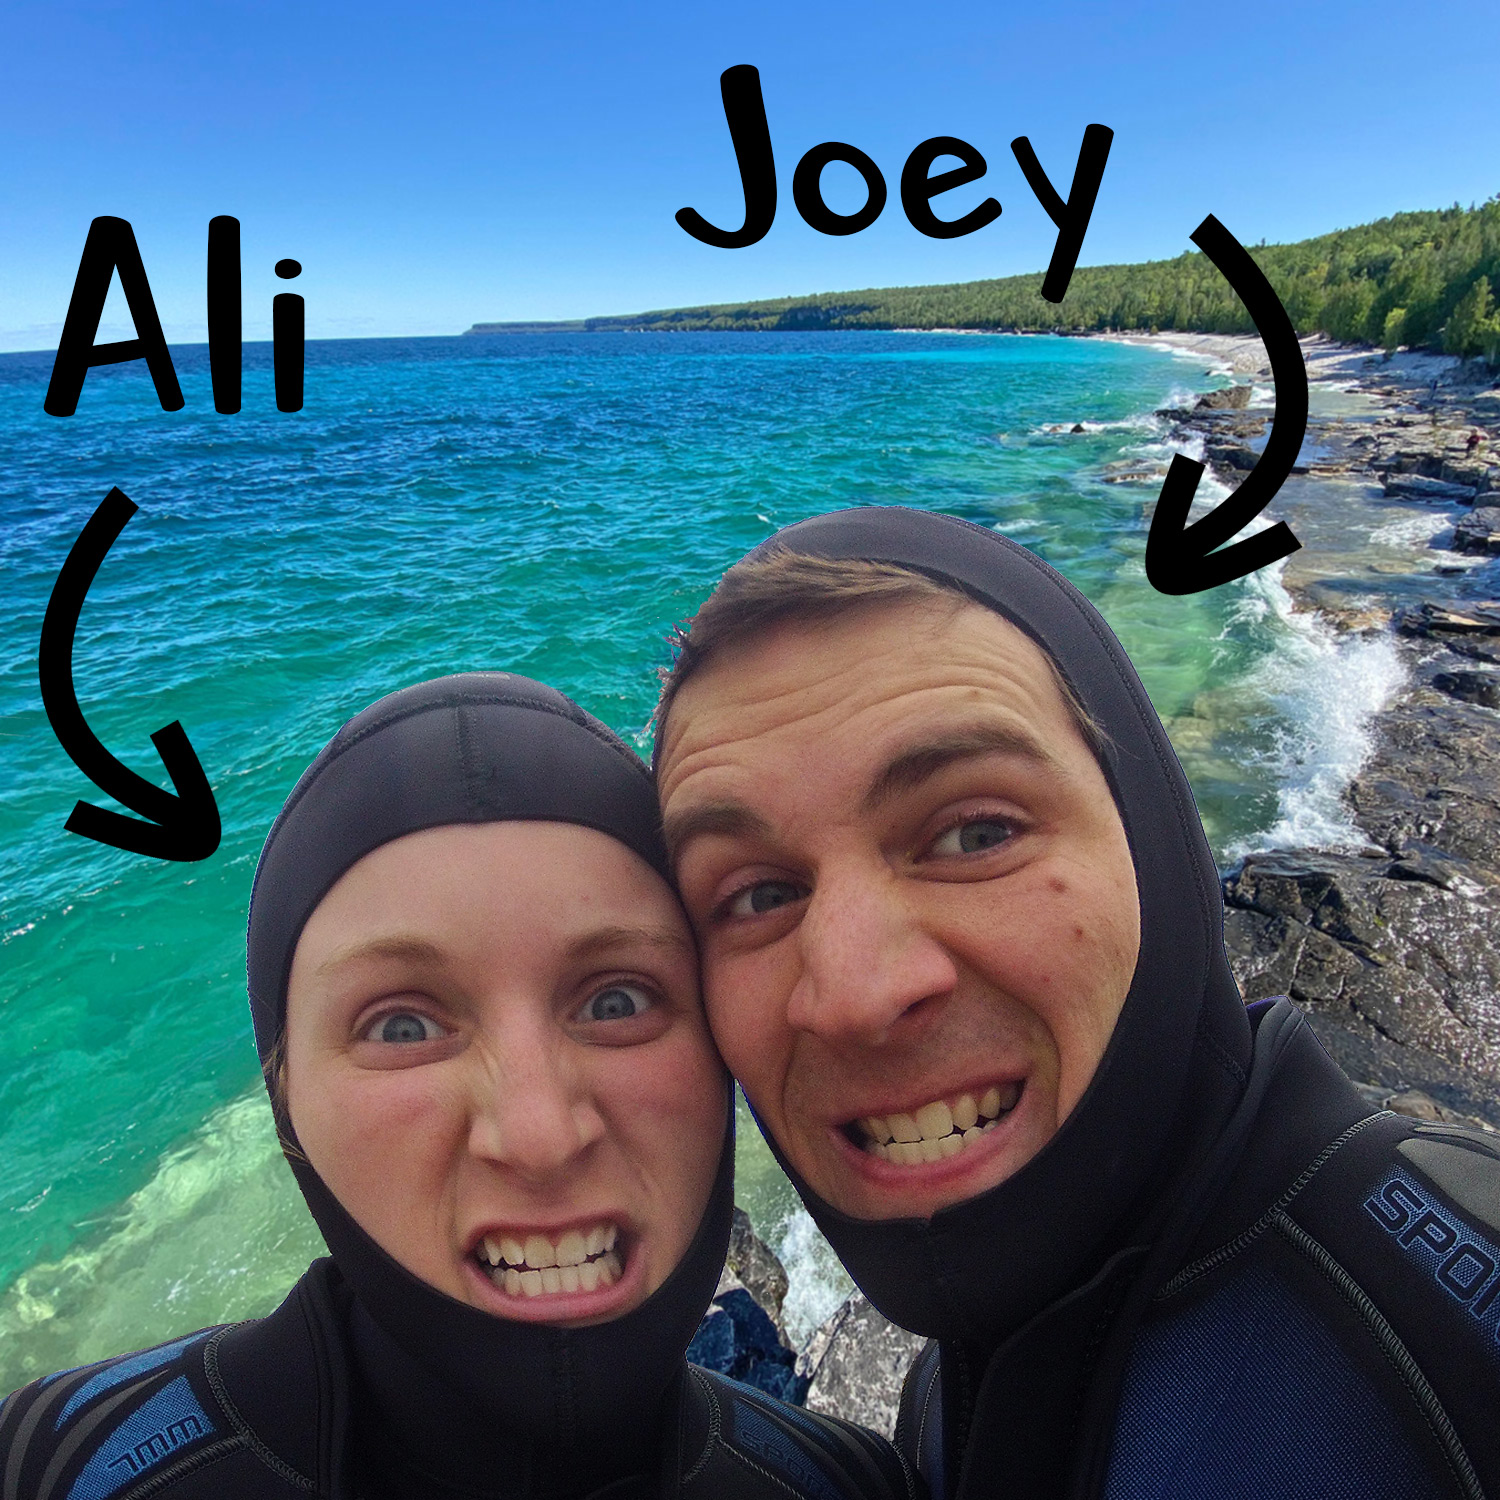 Scuba Buddies And Podcast Hosts Joey And Ali Postma